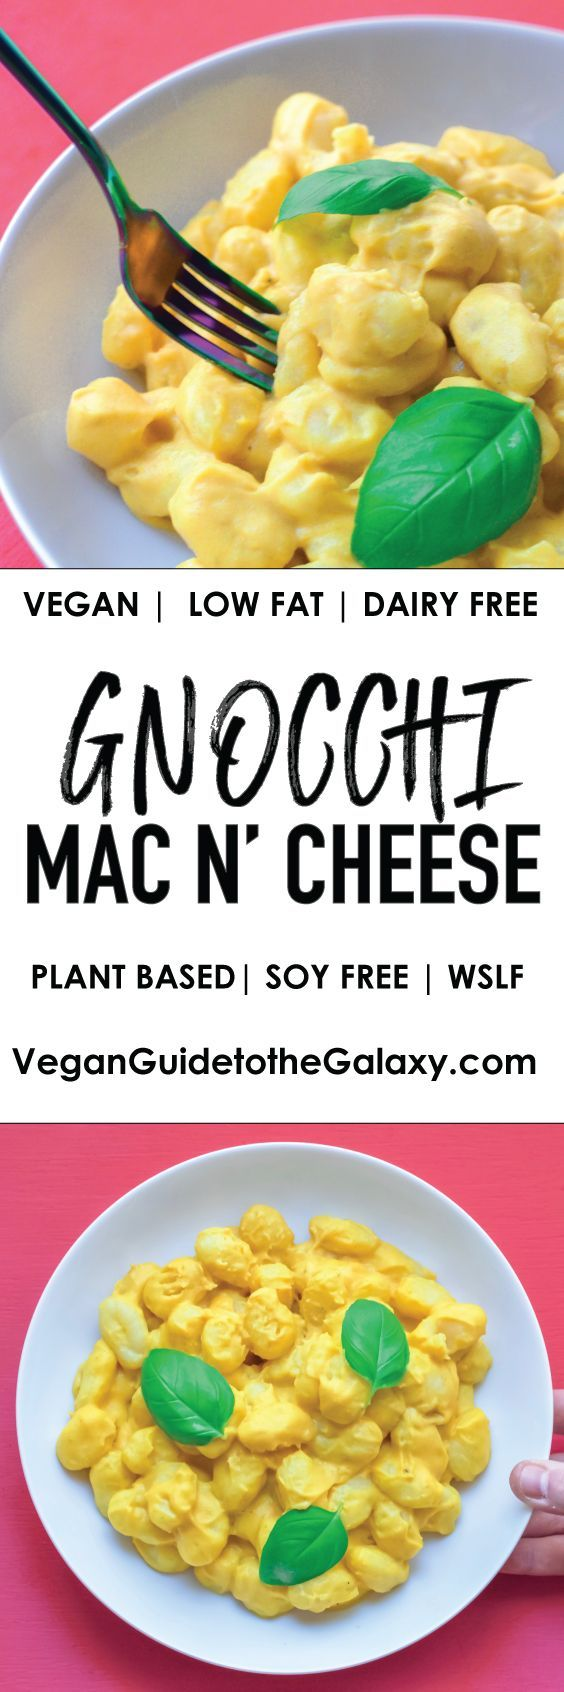 All natural and totally delicious vegan gnocchi mac and cheese with a low fat cheese sauce. Start your plant based diet off with this delicious, quick and healthy dish that can be made in under 30 minutes.